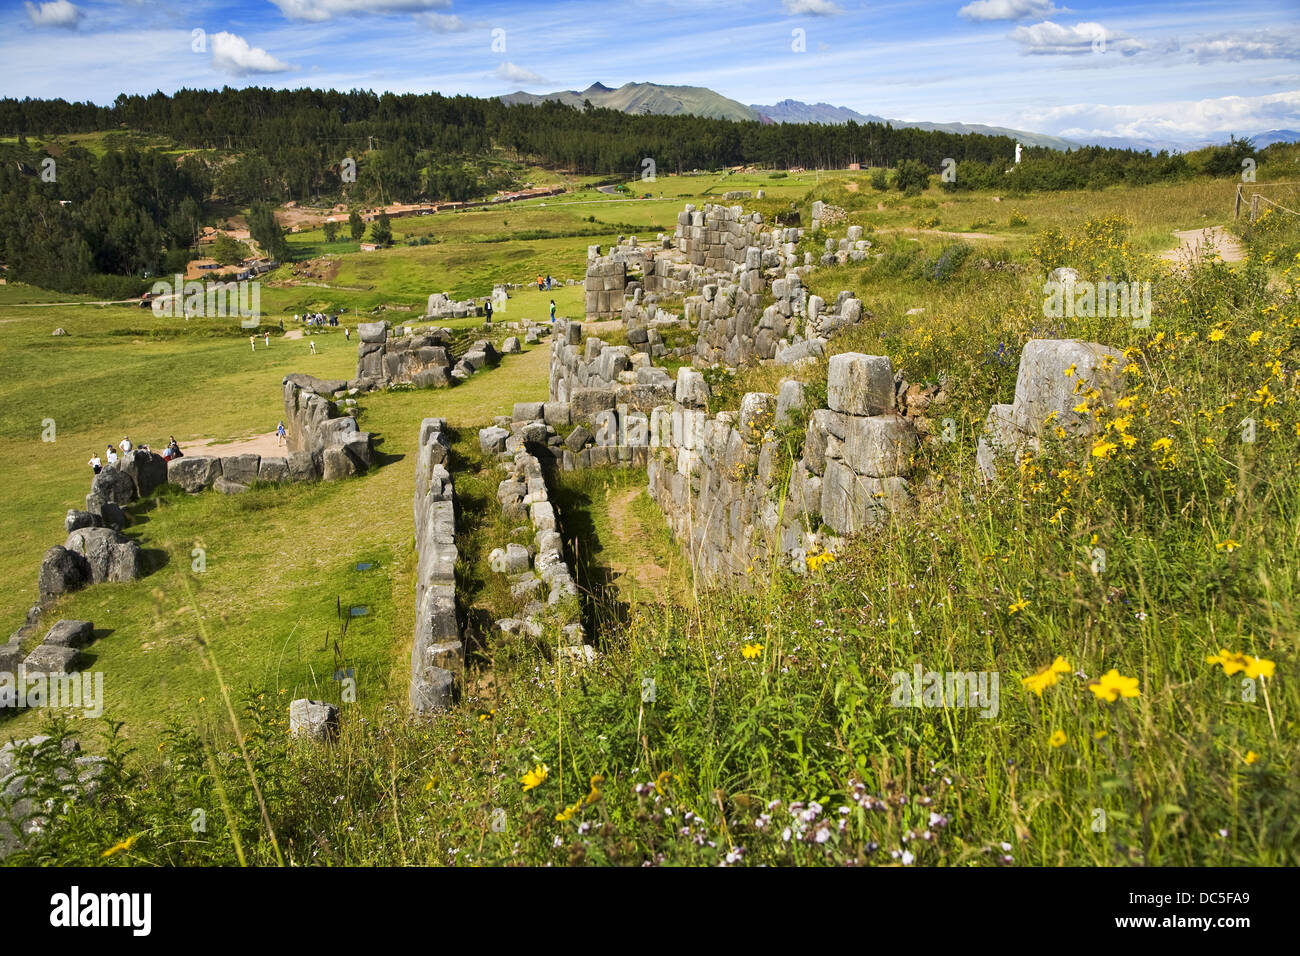 Sacsayhuaman pre-Columbian walled complex near the old city of Cusco, Peru - Stock Image